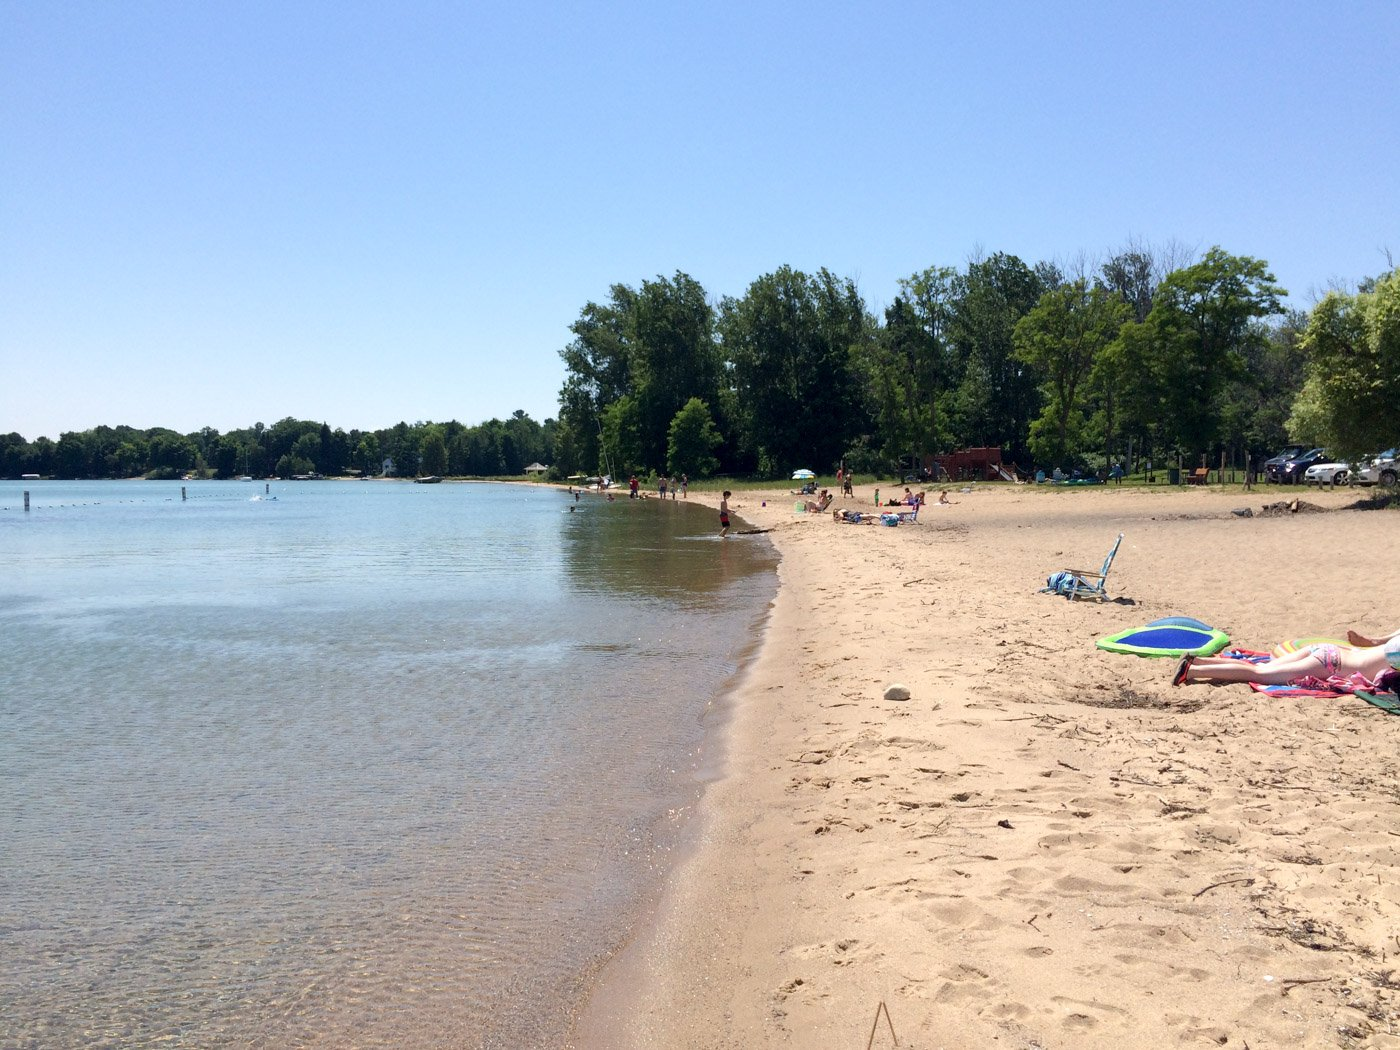 If you want a little more space and an off the beaten path beach experience,here are some of the best beaches in Traverse City for escaping those summertime crowds!